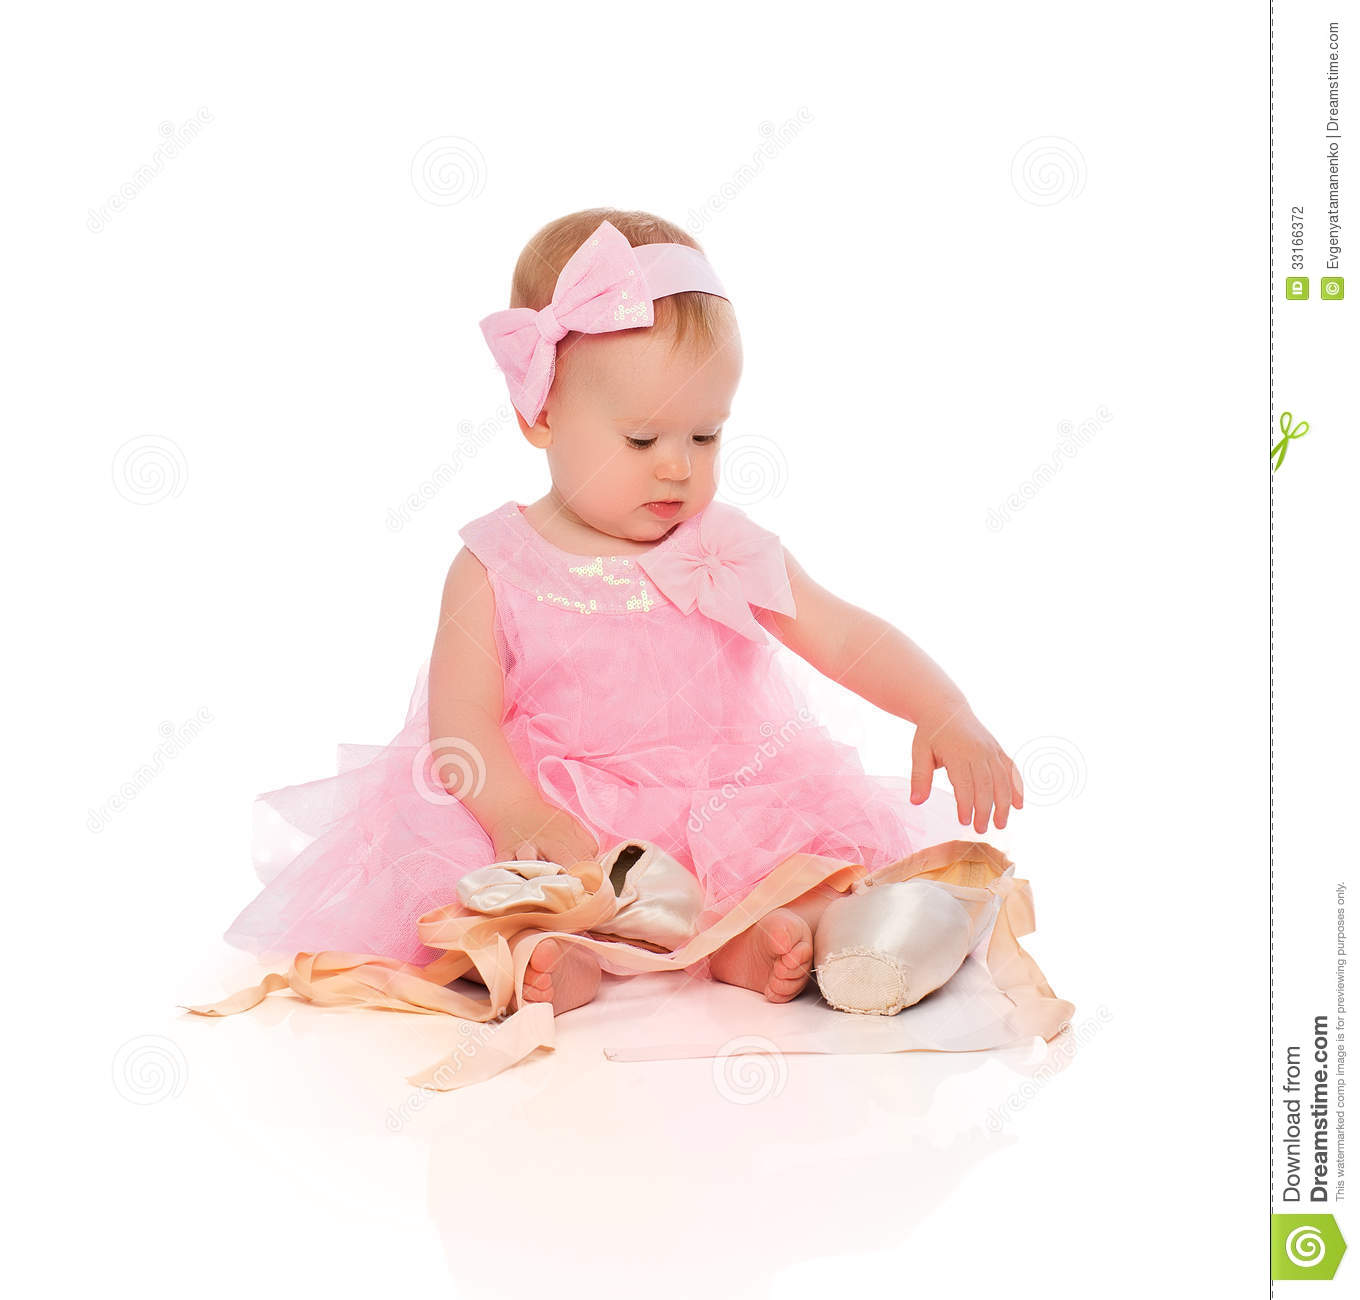 Toddler White Ballerina Shoes